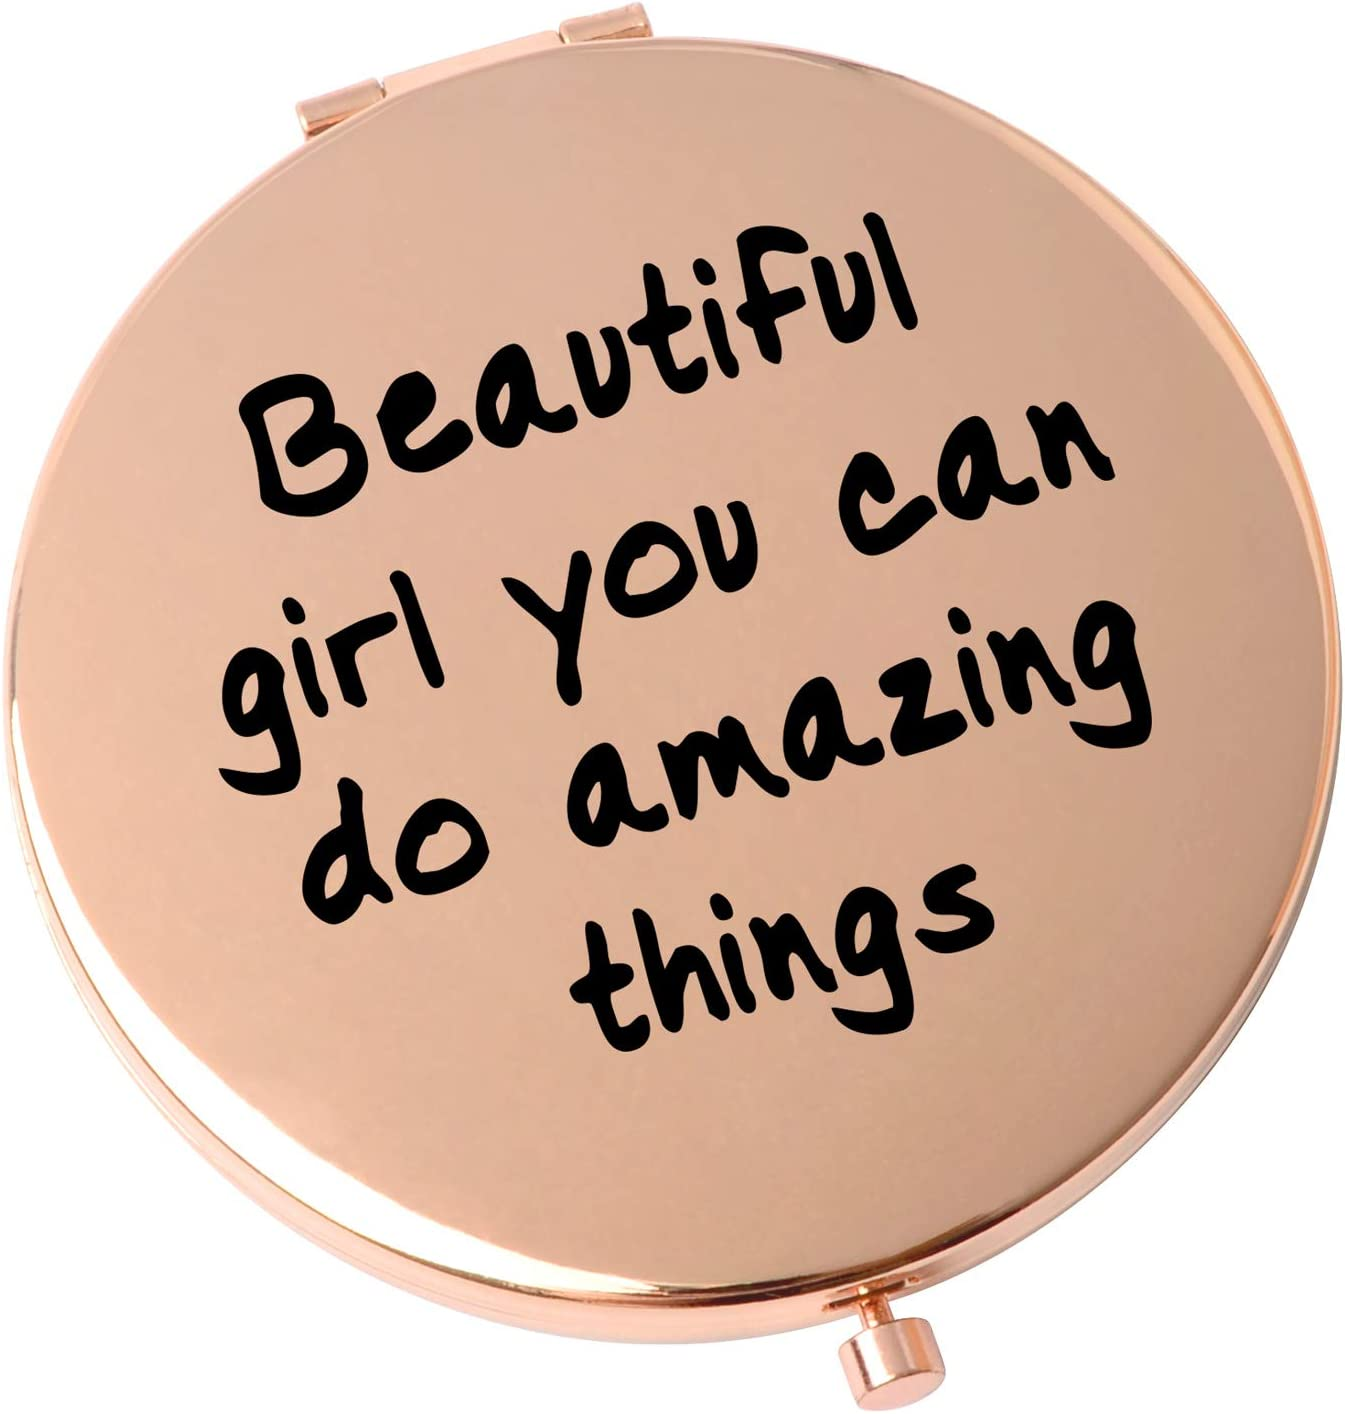 Girls Best Gift Pocket Metal Mirror Compact Travel Mirrors Sister Friend Gifts Beautiful Girl You can do Amazing Things.Travel Magnifying Mirror-Rose Gold